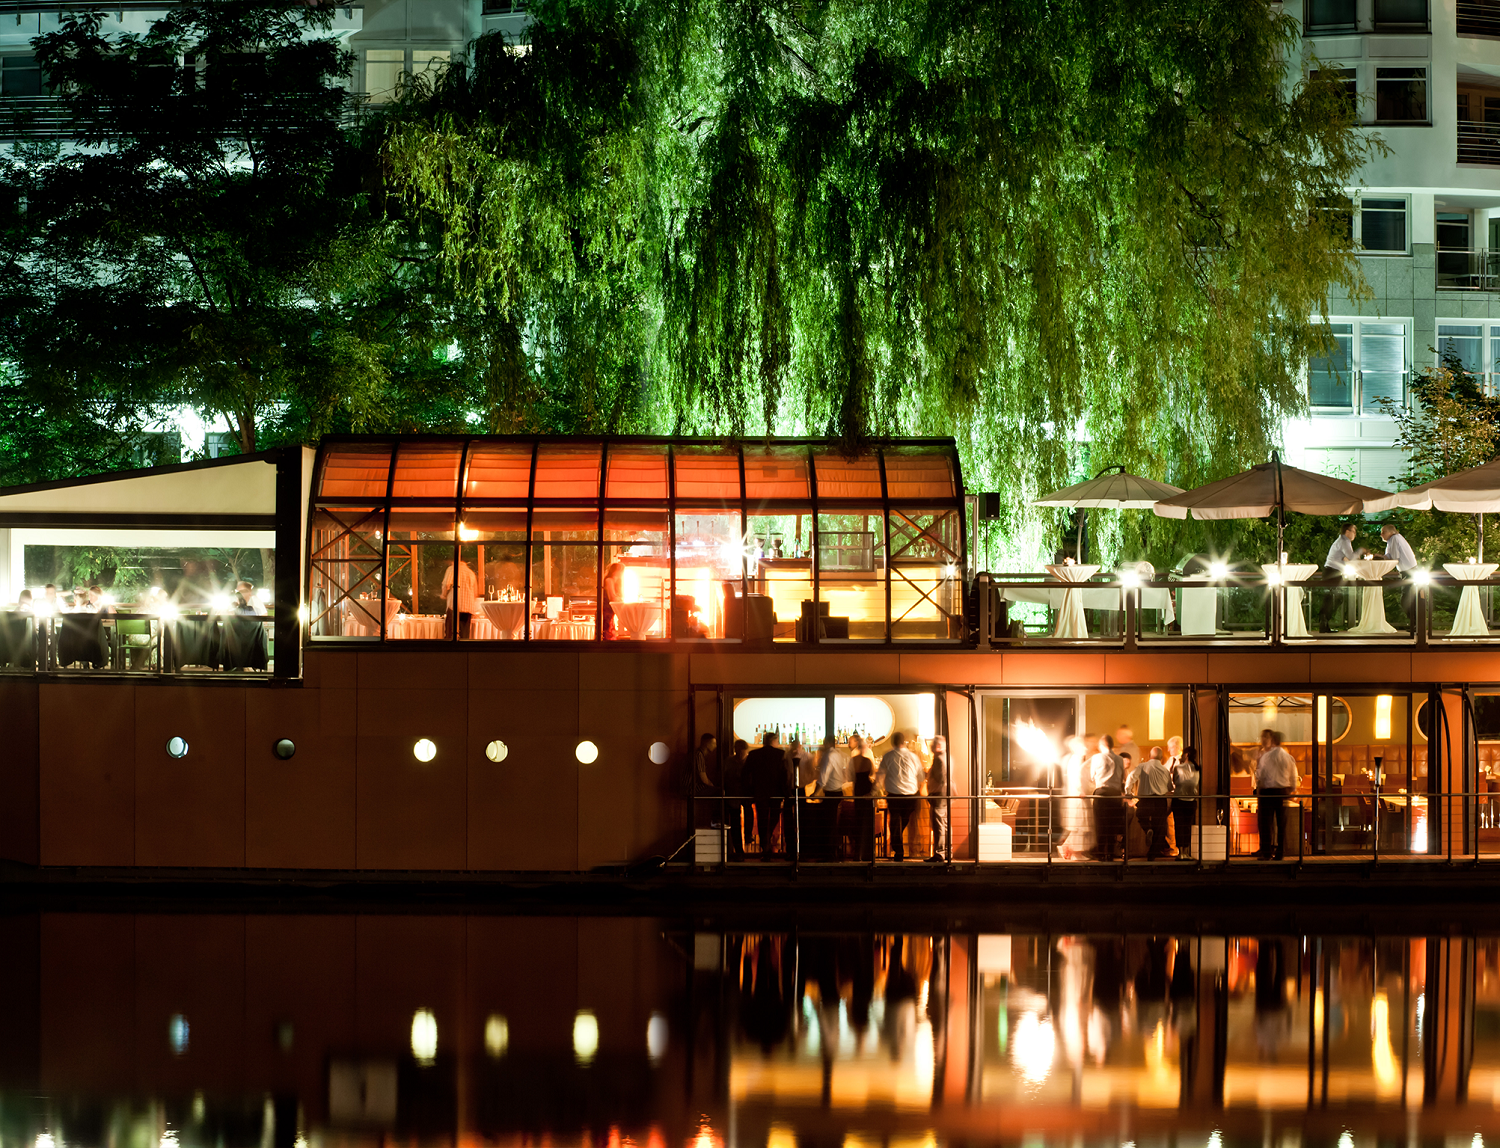 PATIO - Restaurantschiff - Berlin